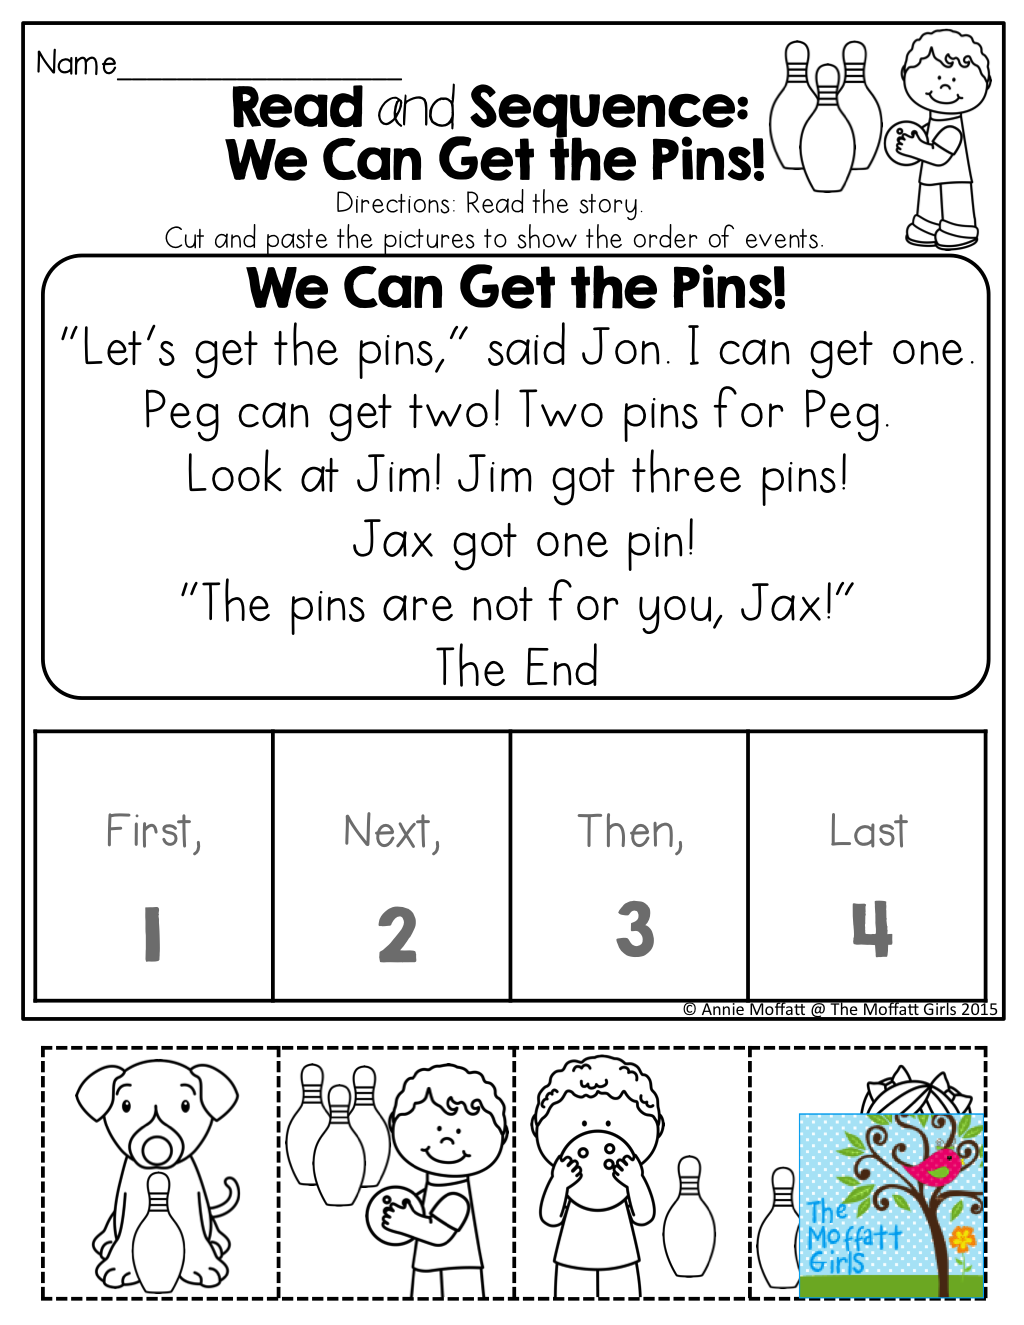 Read And Sequence A Simple Story Read The Simple Story Cut And Paste The Pictures To Show The